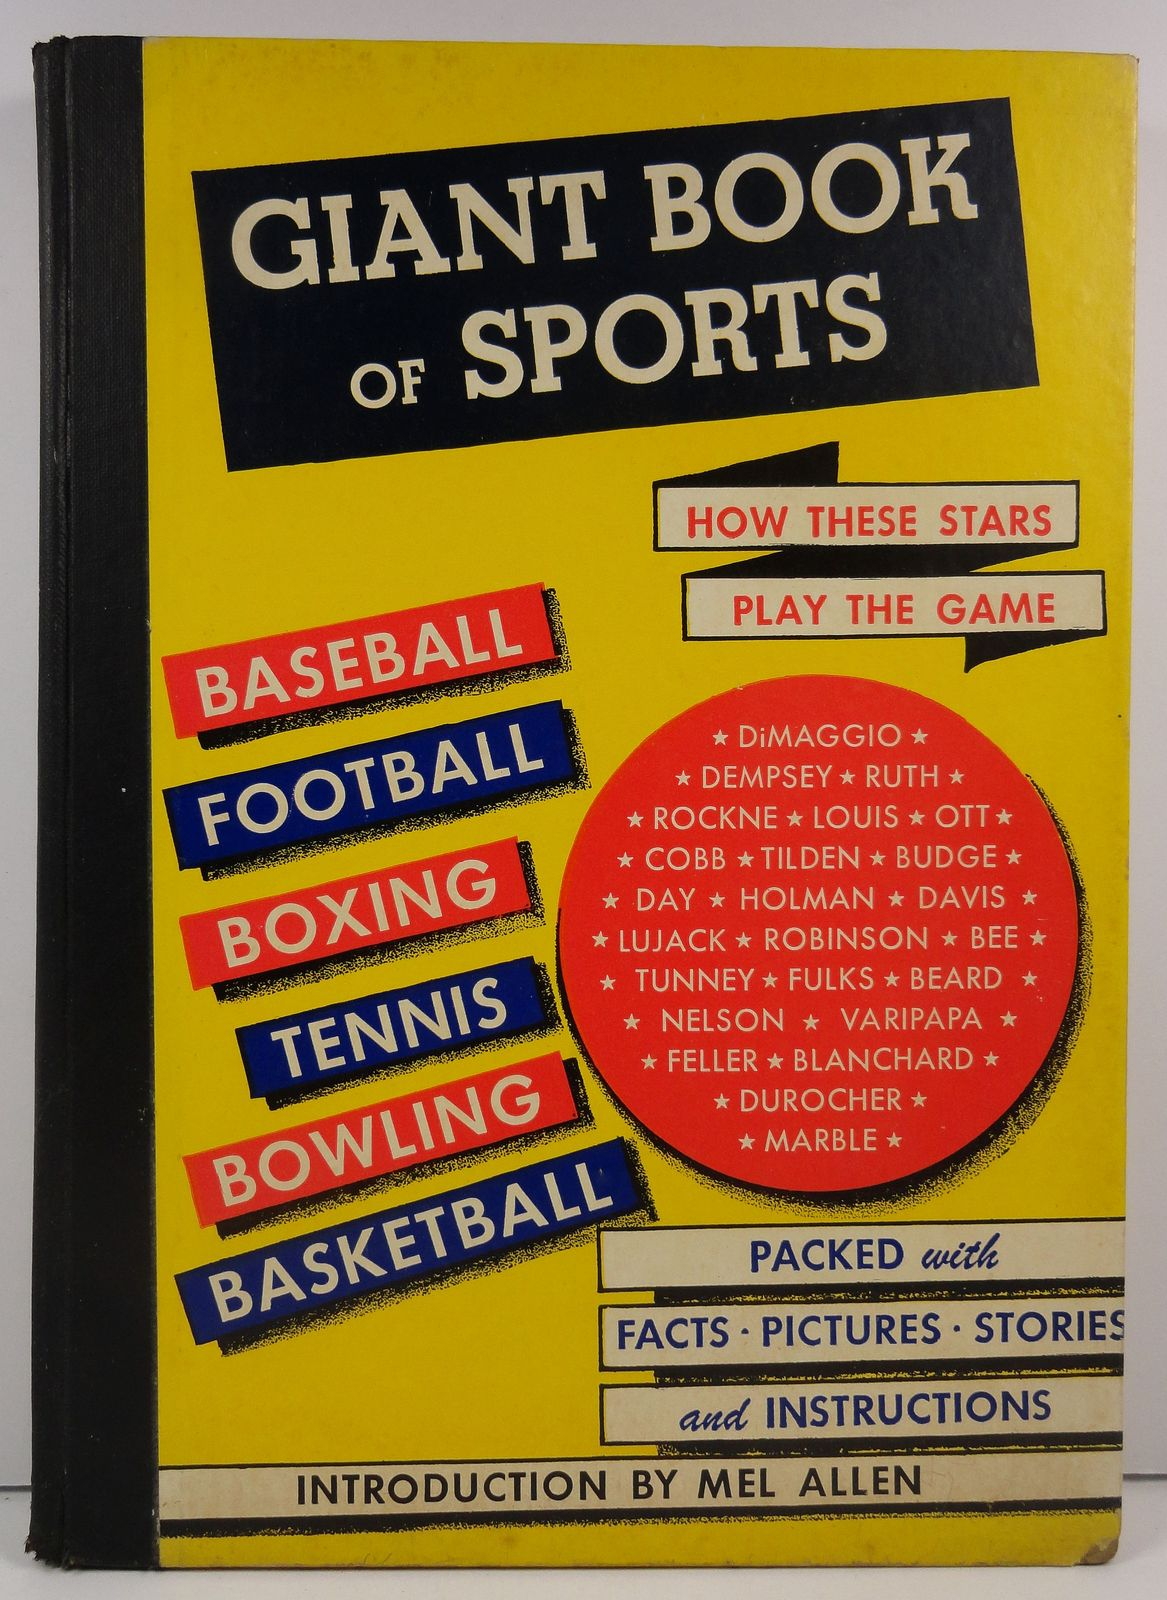 Giant Book of Sports by Samuel Nisenson 1948